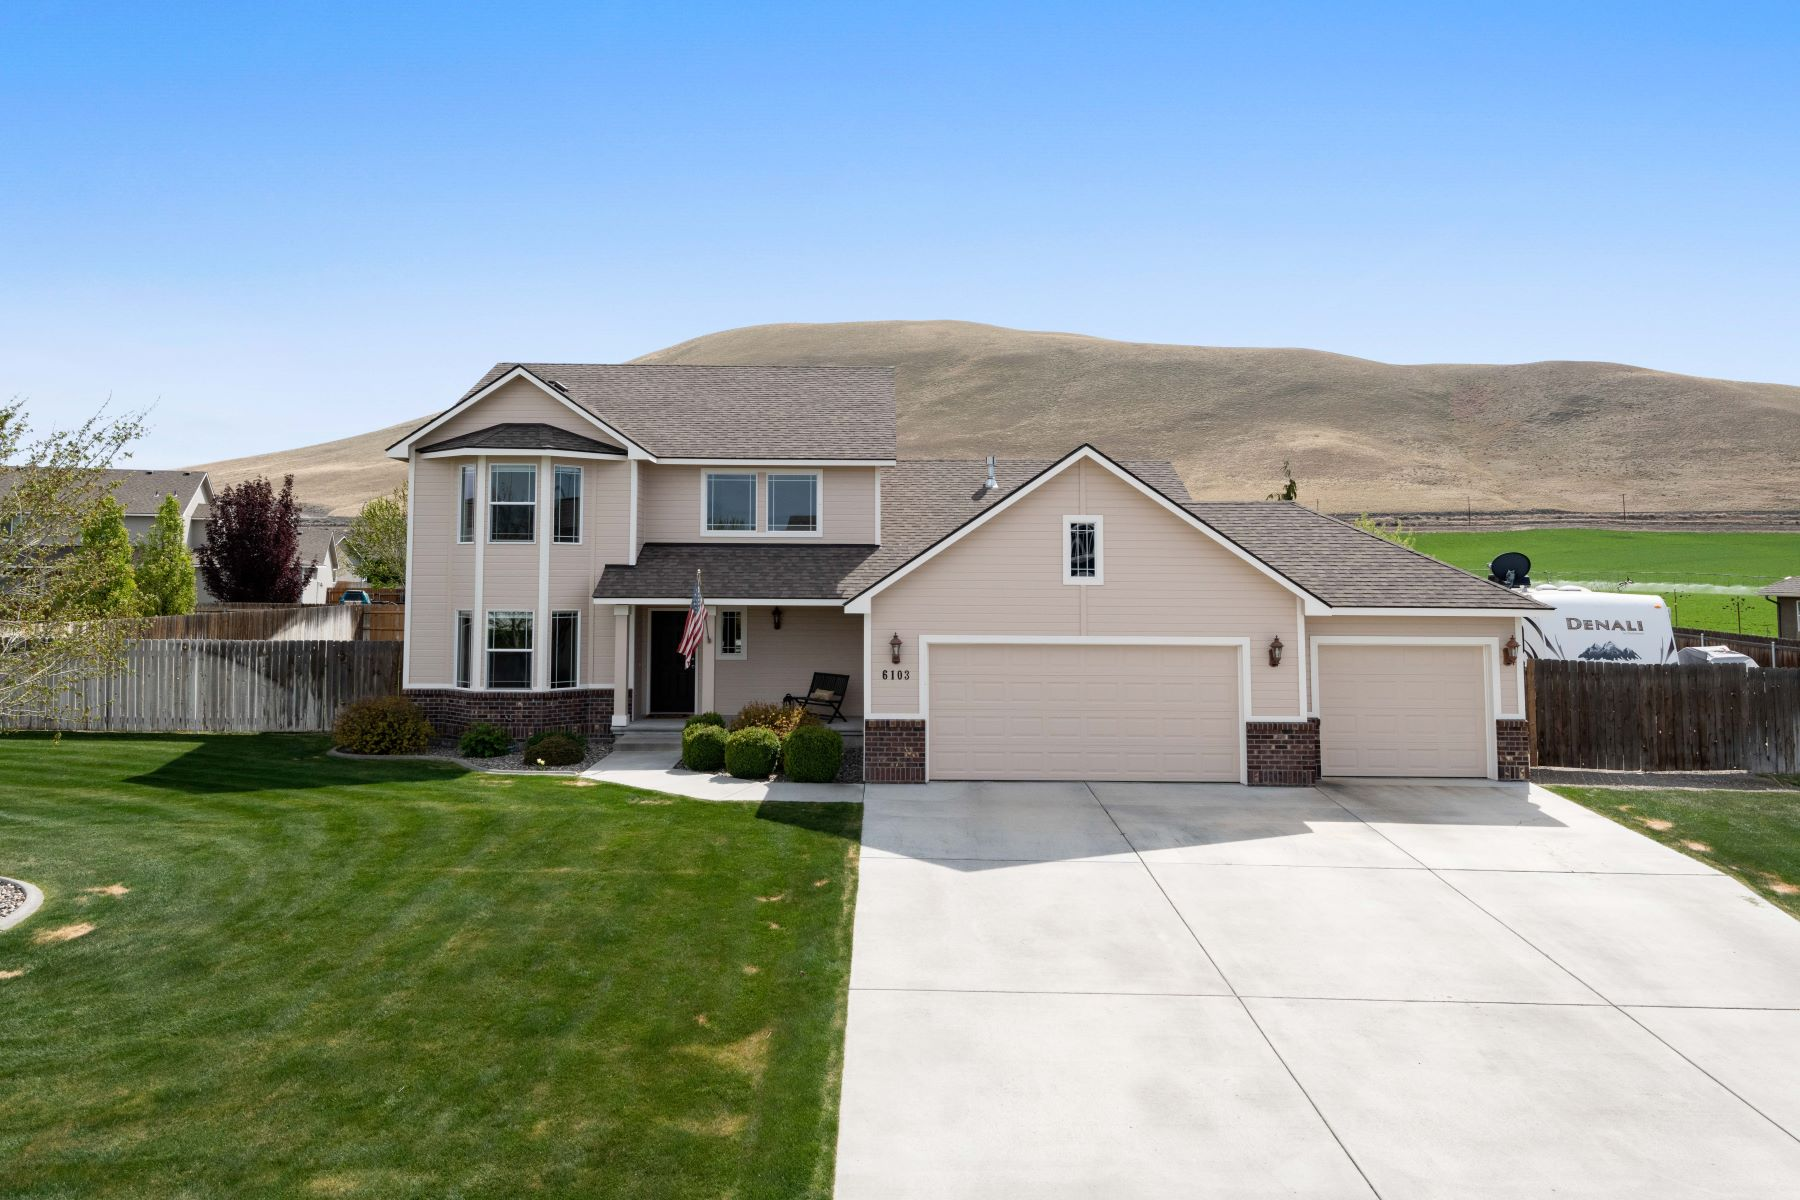 Single Family Homes for Sale at Room for Shop &Pool & 1/3+ acre lot 6103 Willowbend Street, West Richland, Washington 99353 United States